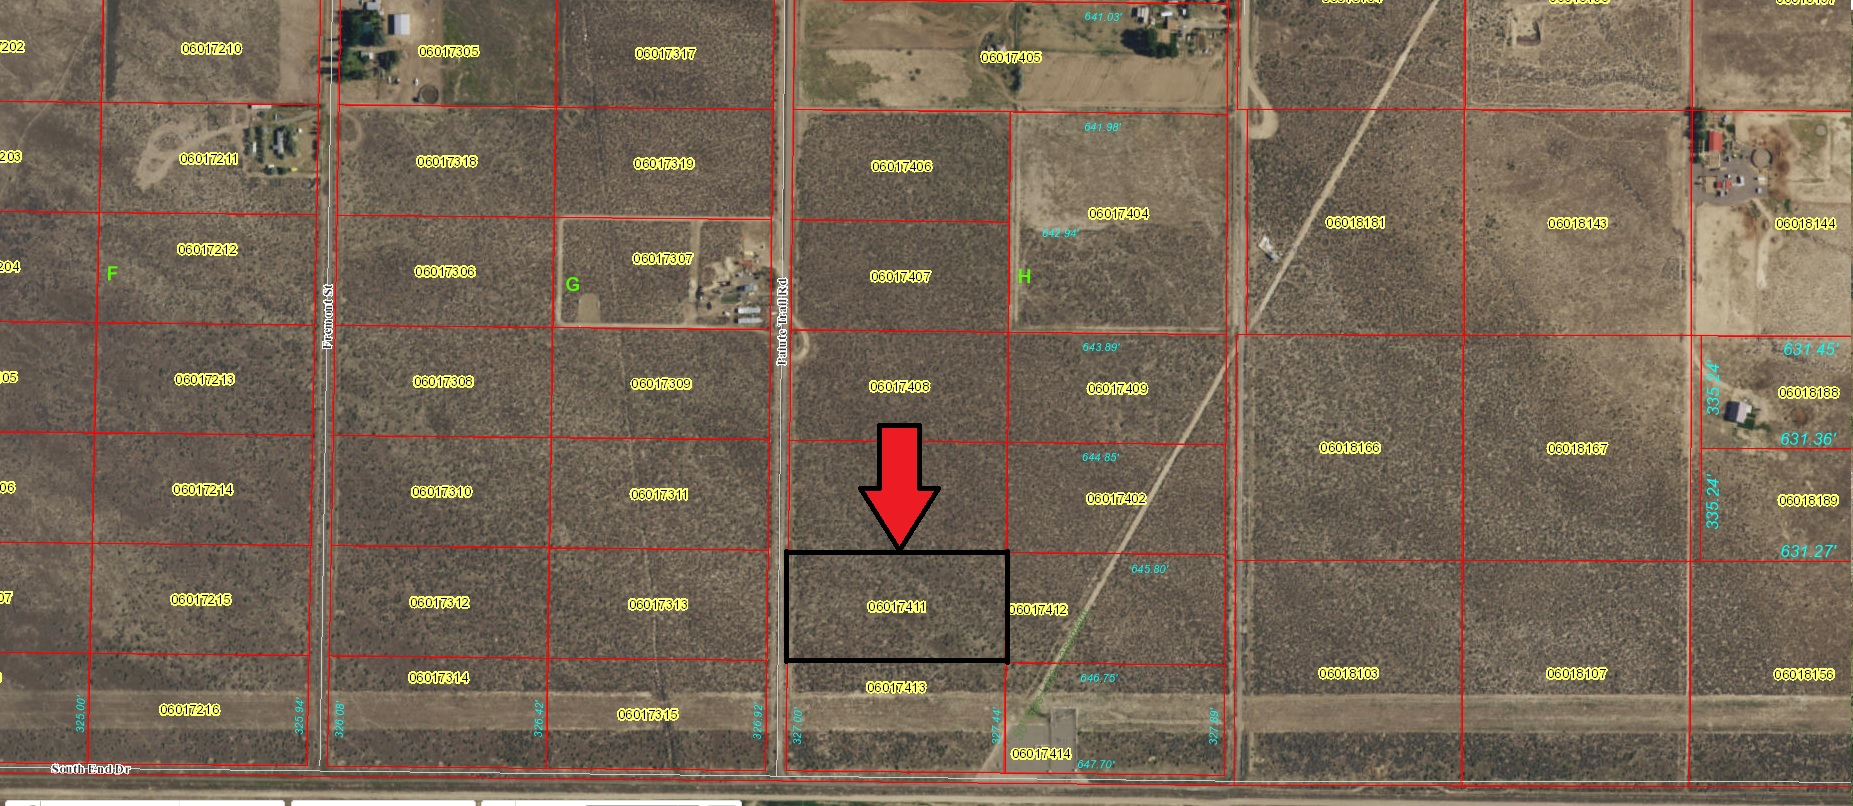 "<span style=""color: red"">*SOLD*</span>